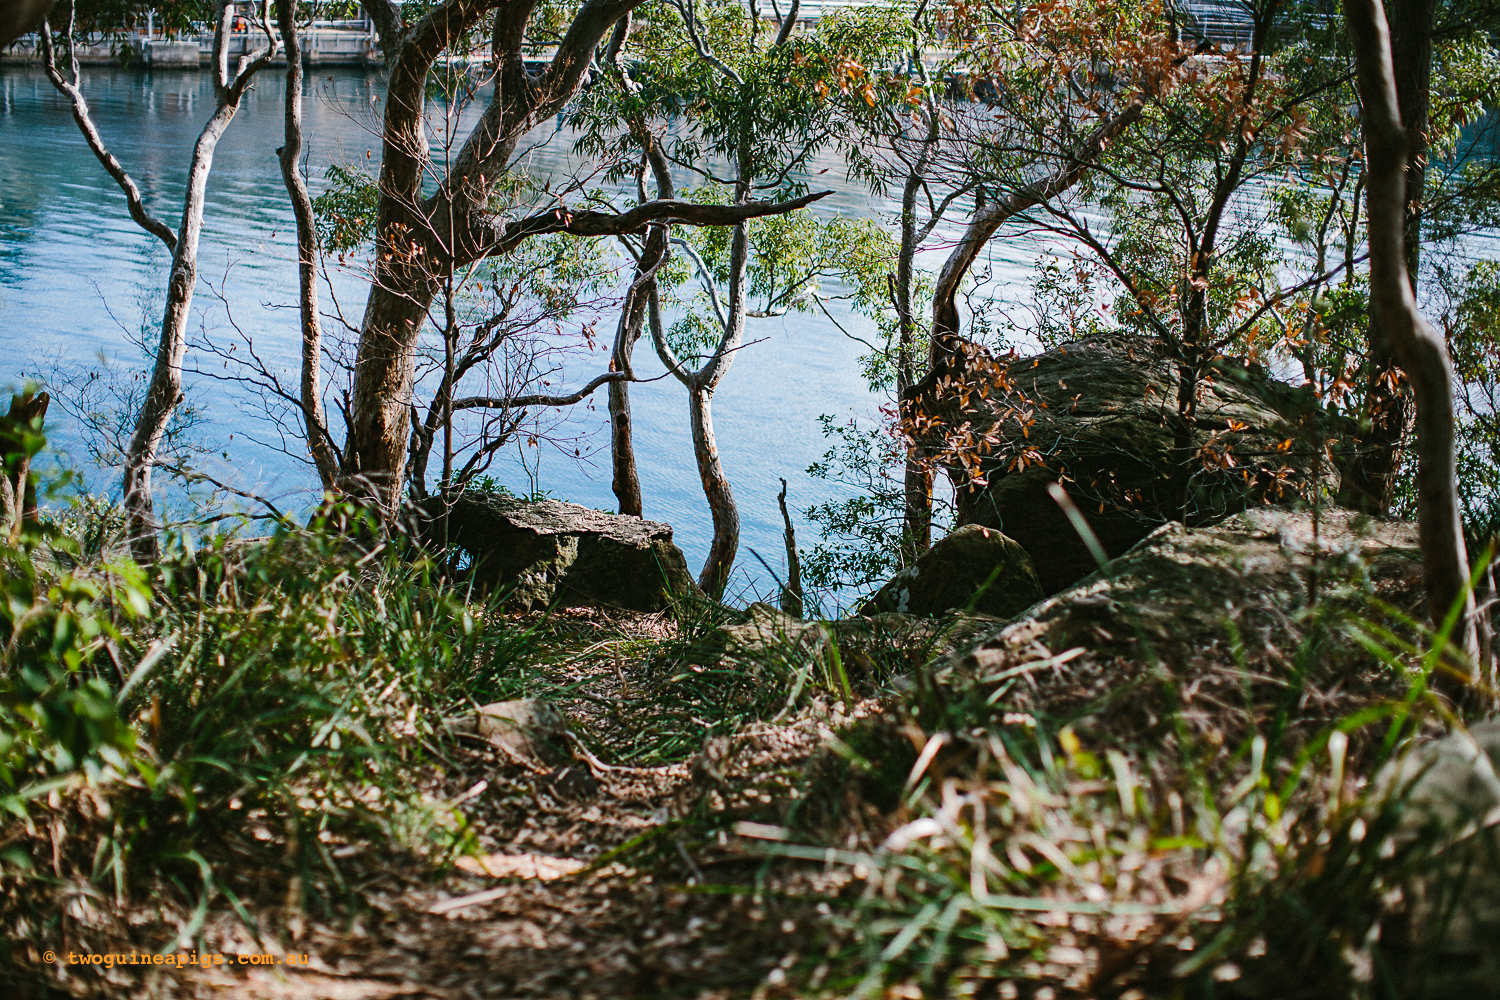 twoguineapigs_pet_photography_berry_island_reserve_wollstonecraft_location_scout_1500-54.jpg